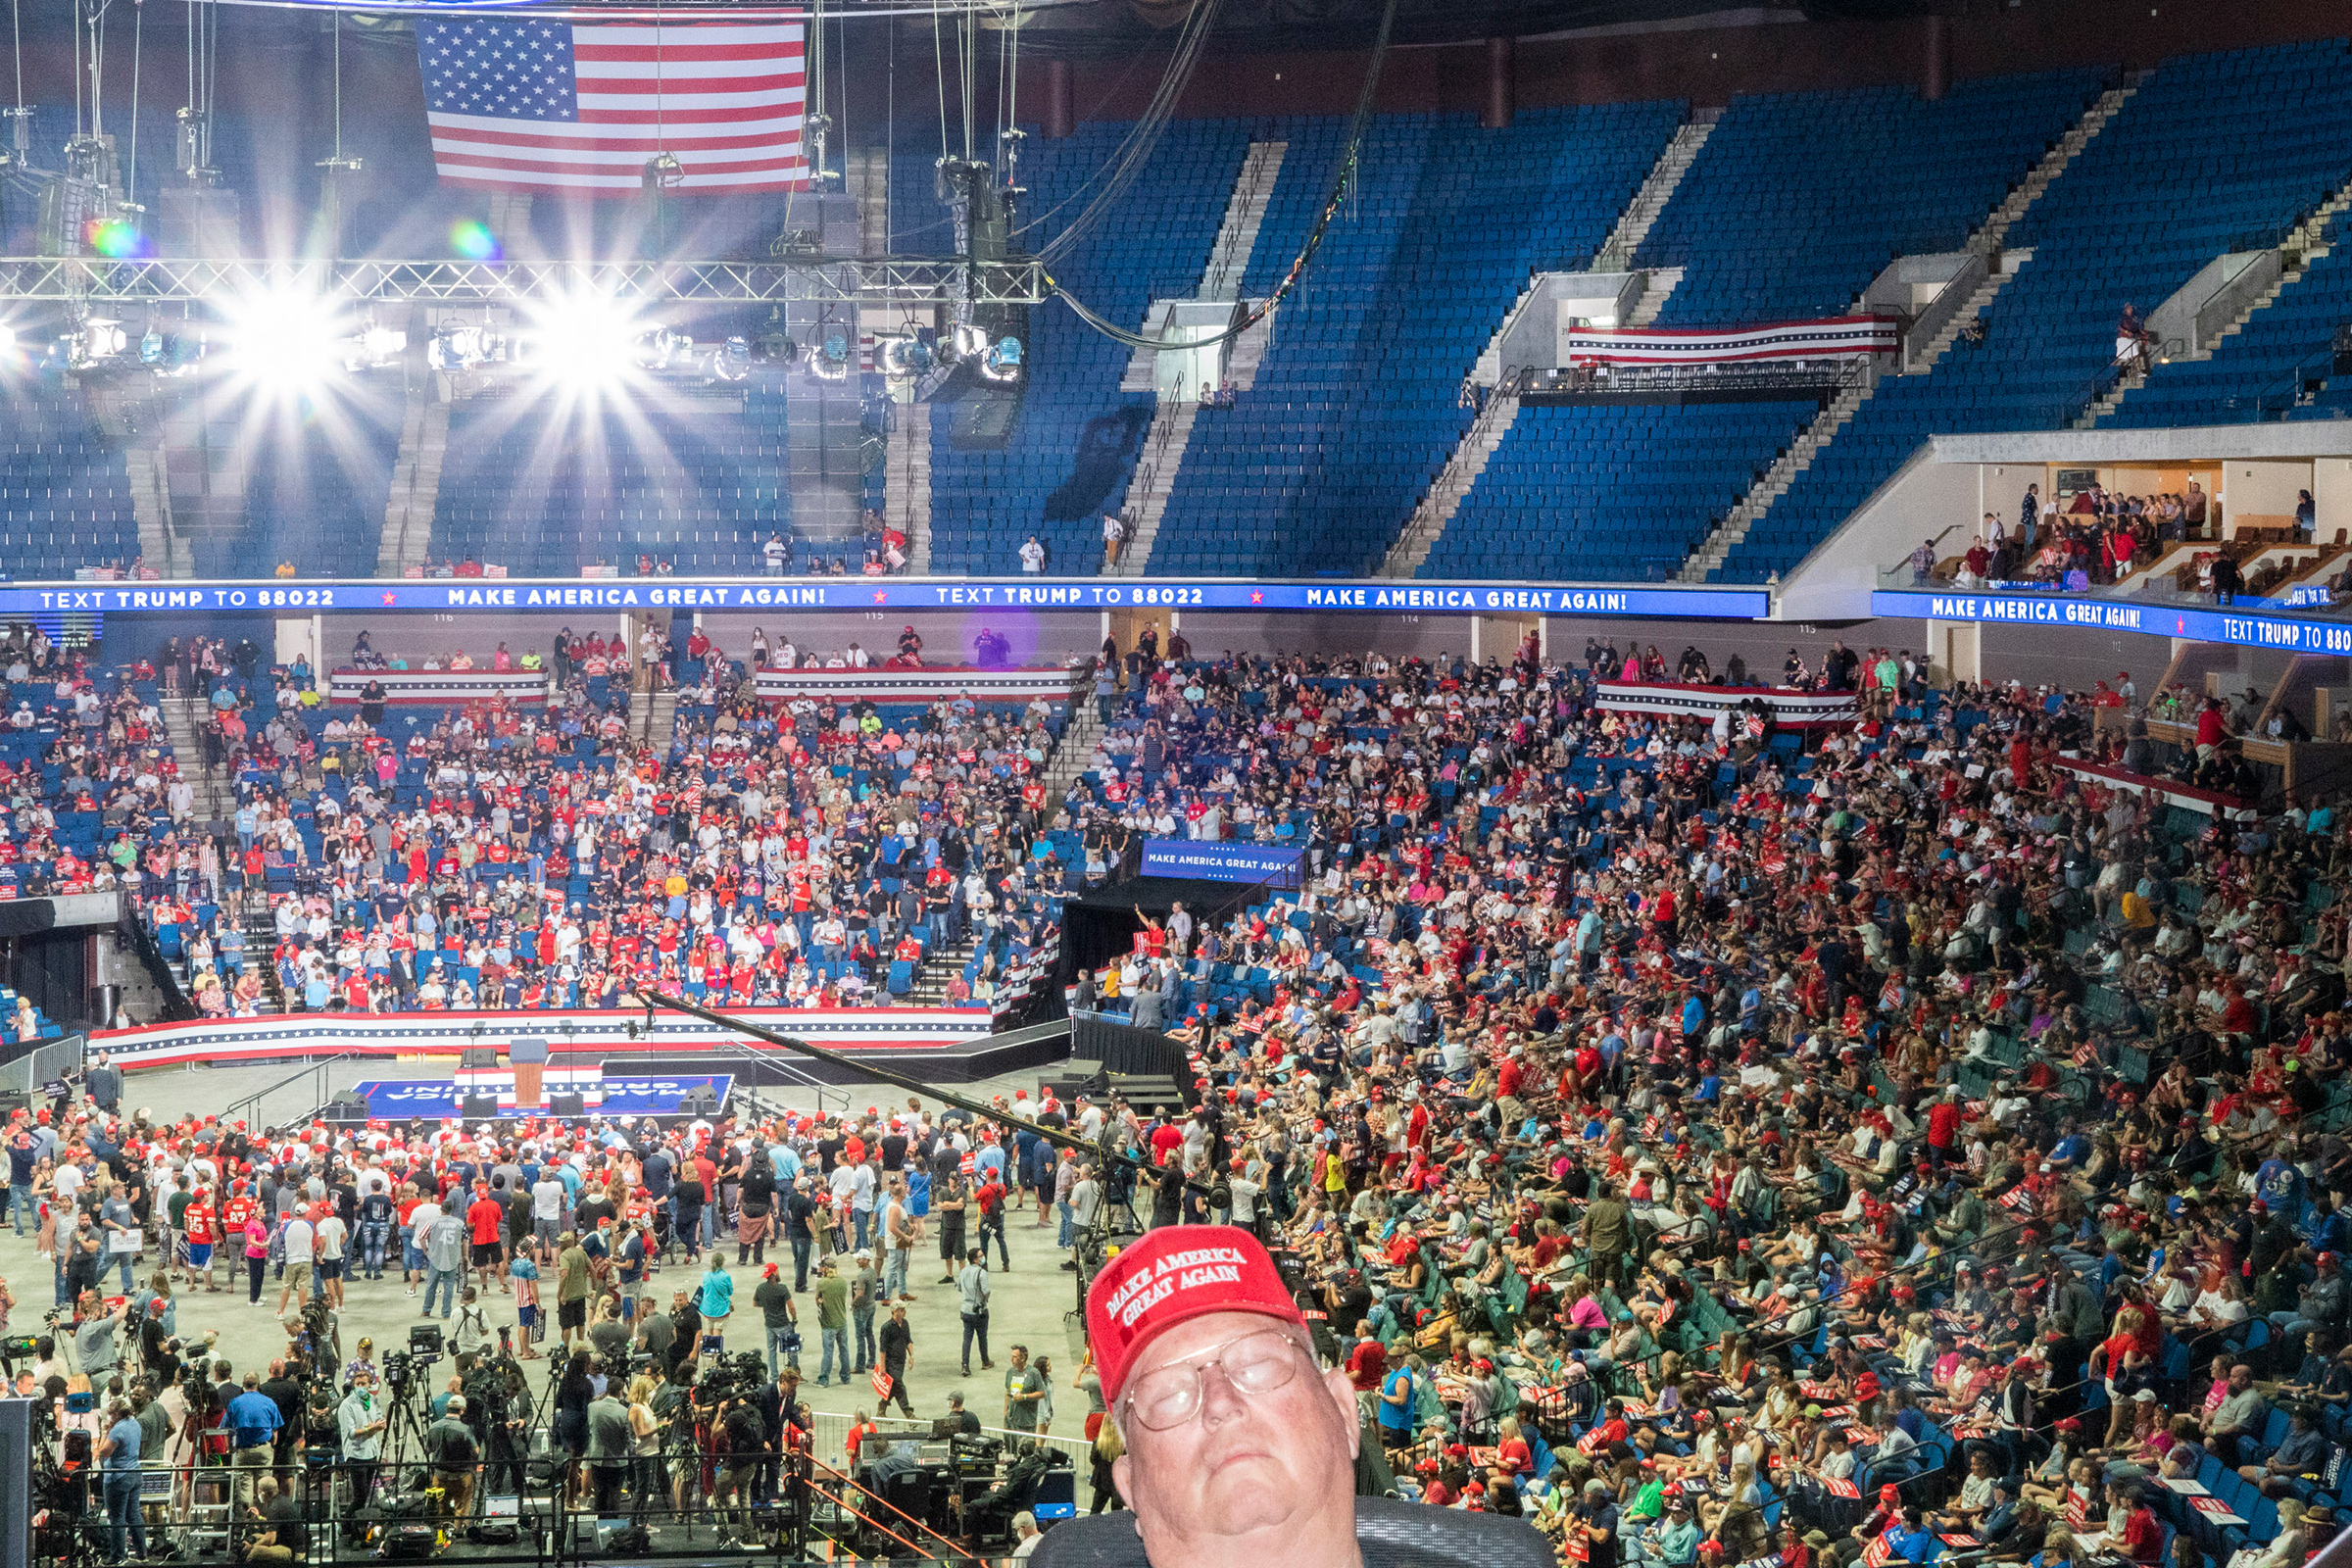 Rally attendees wait for President Trump to arrive at the BOK Center in Tulsa, Okla., on June 20. It was Trump's first campaign rally in months since the COVID-19 pandemic began in the U.S.